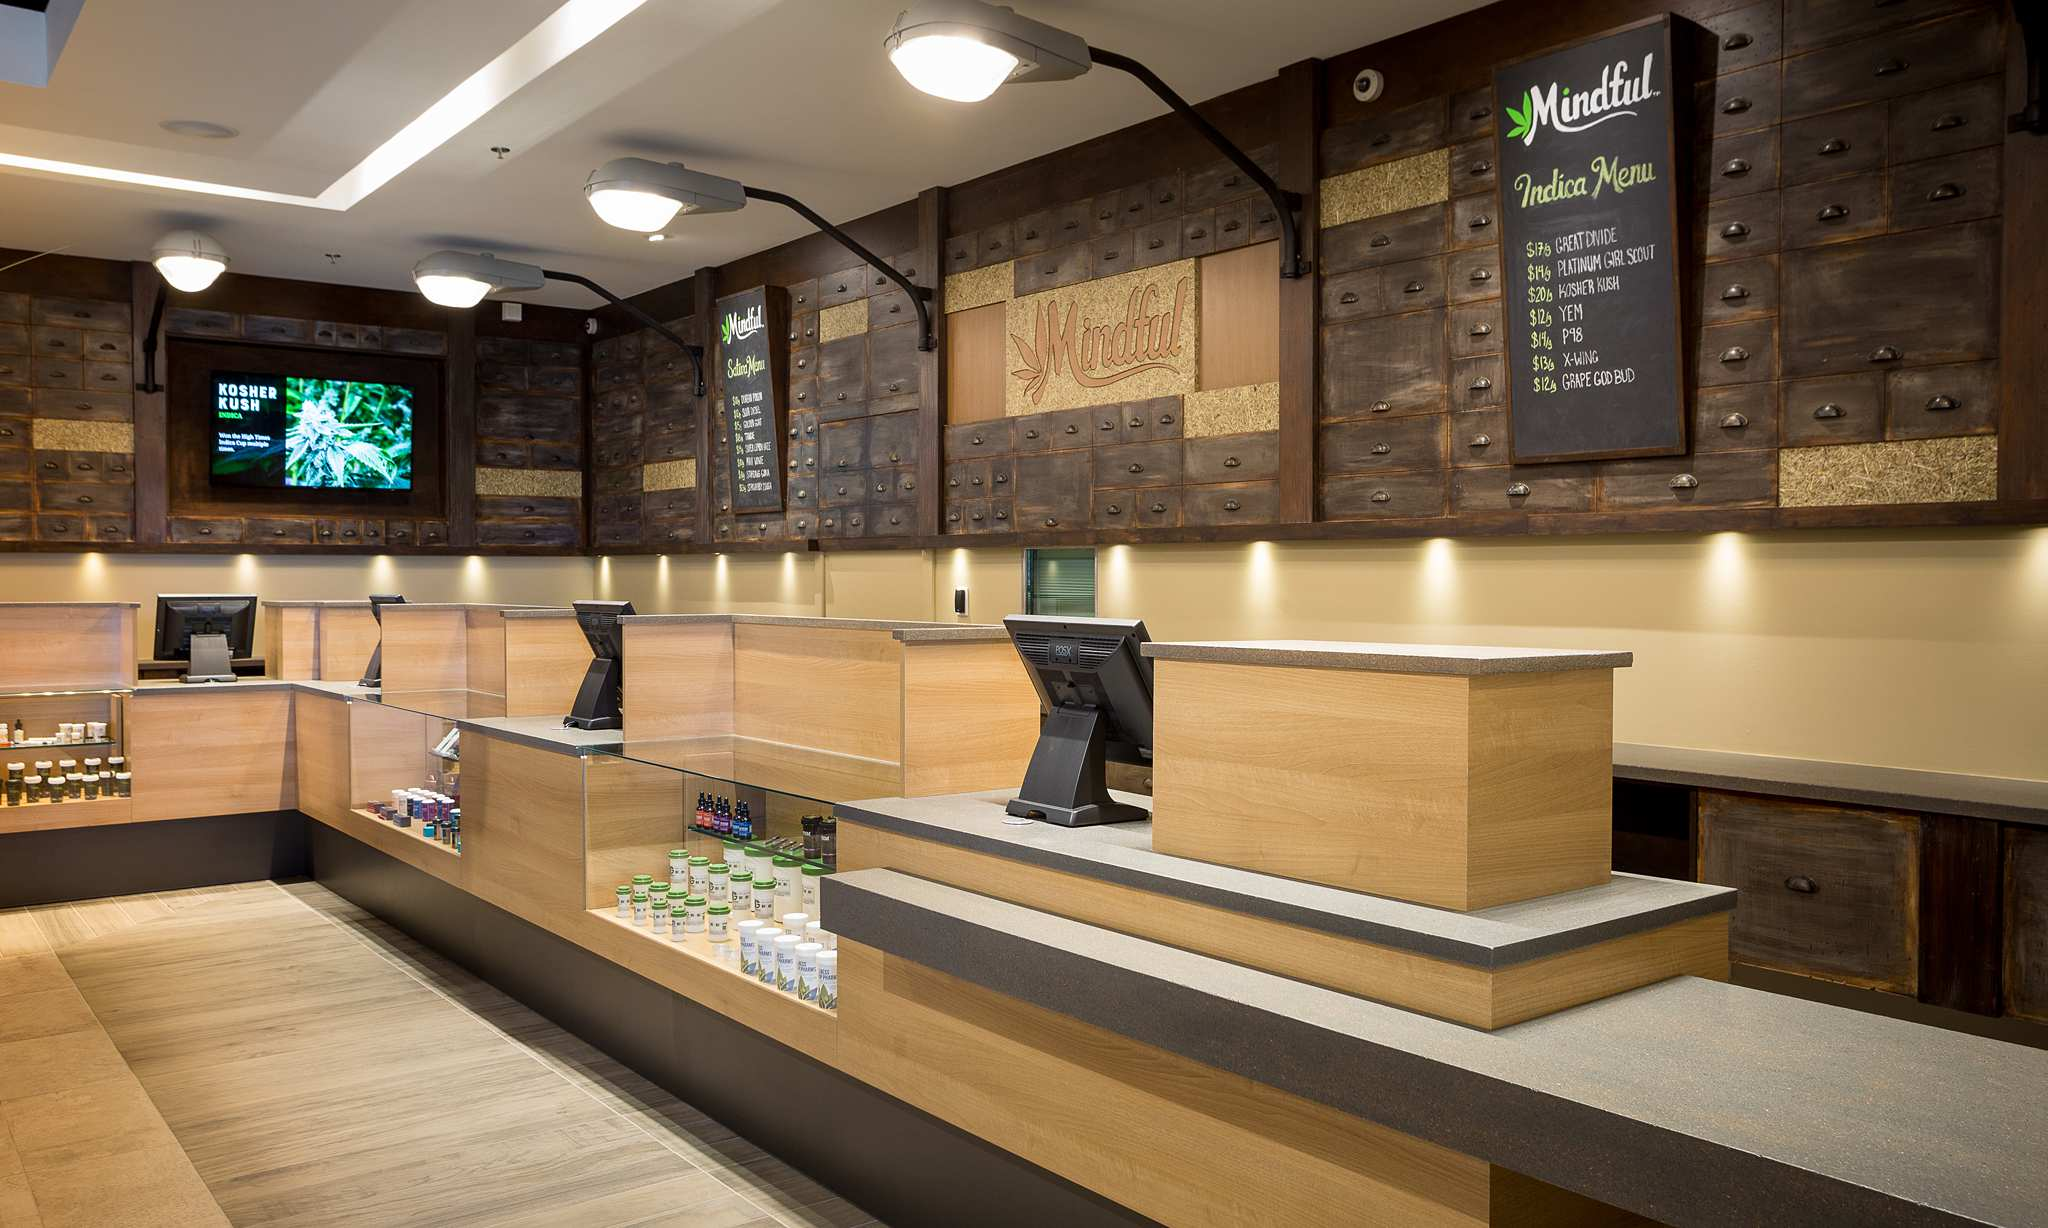 Virtual Tour Dispensary Chicago See Inside Google Maps Virtual Tours Chicago Trusted